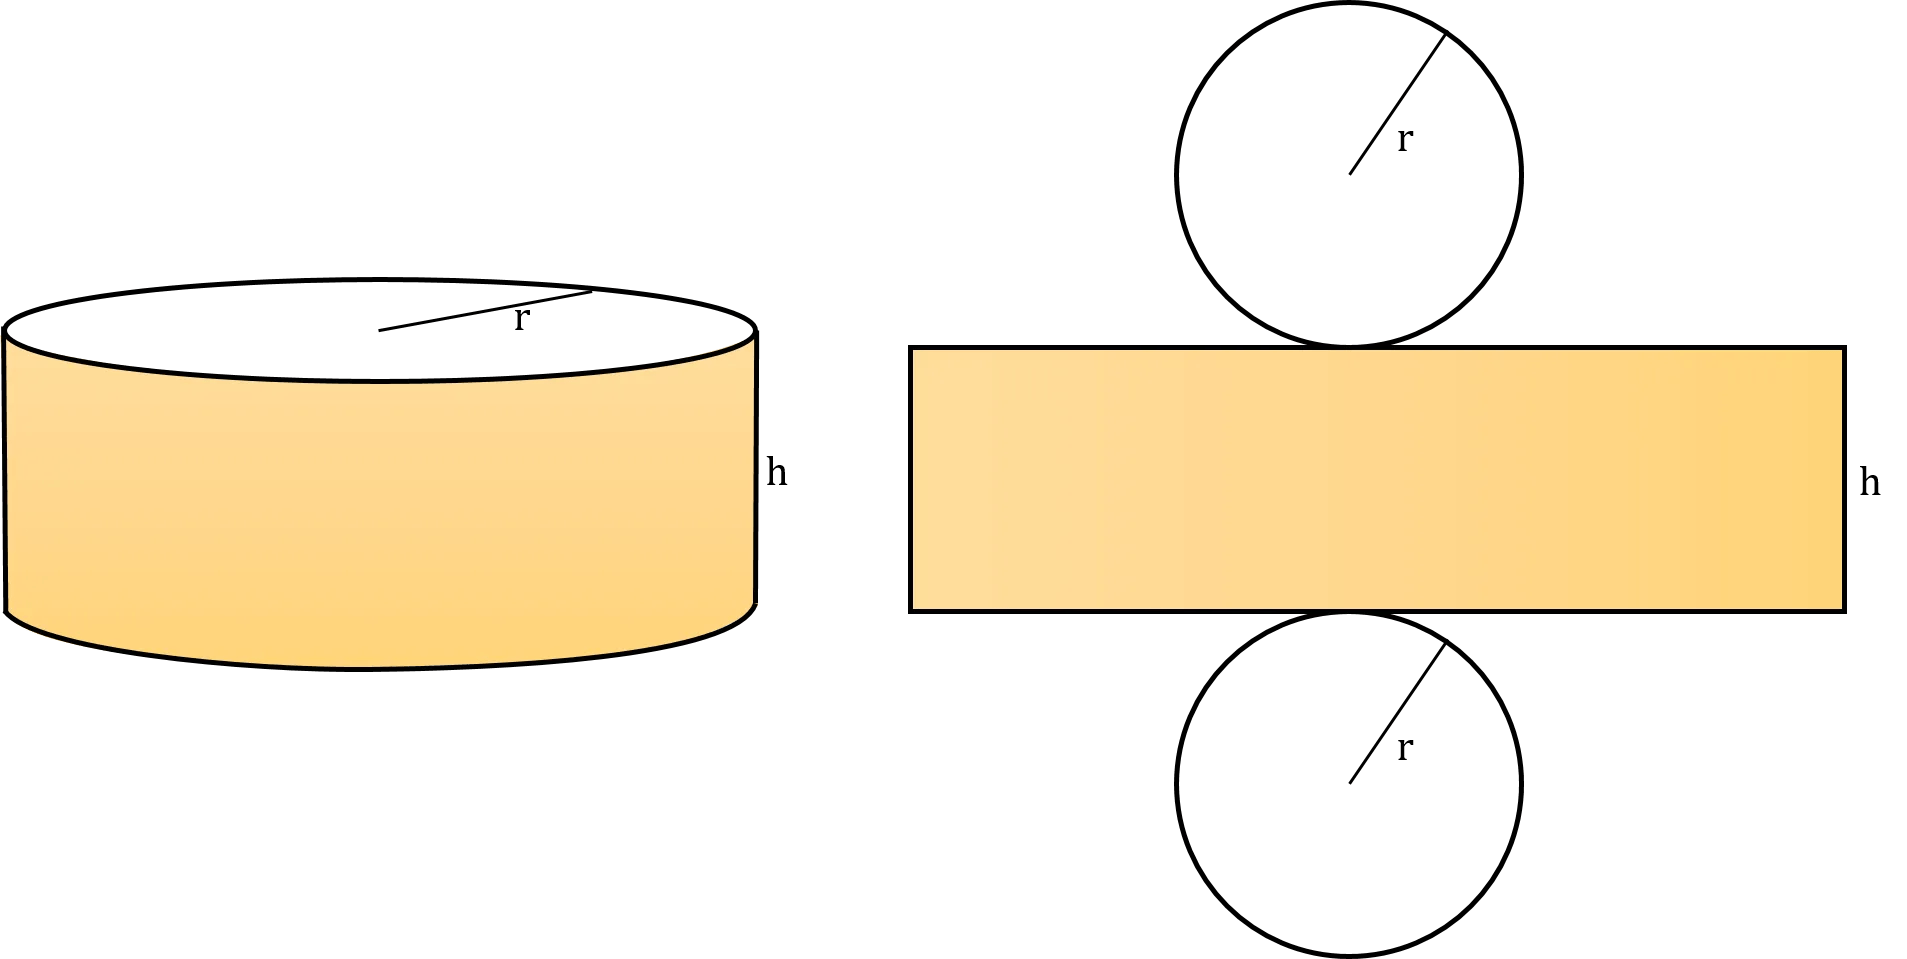 Surface Area Of A Cylinder Calculator